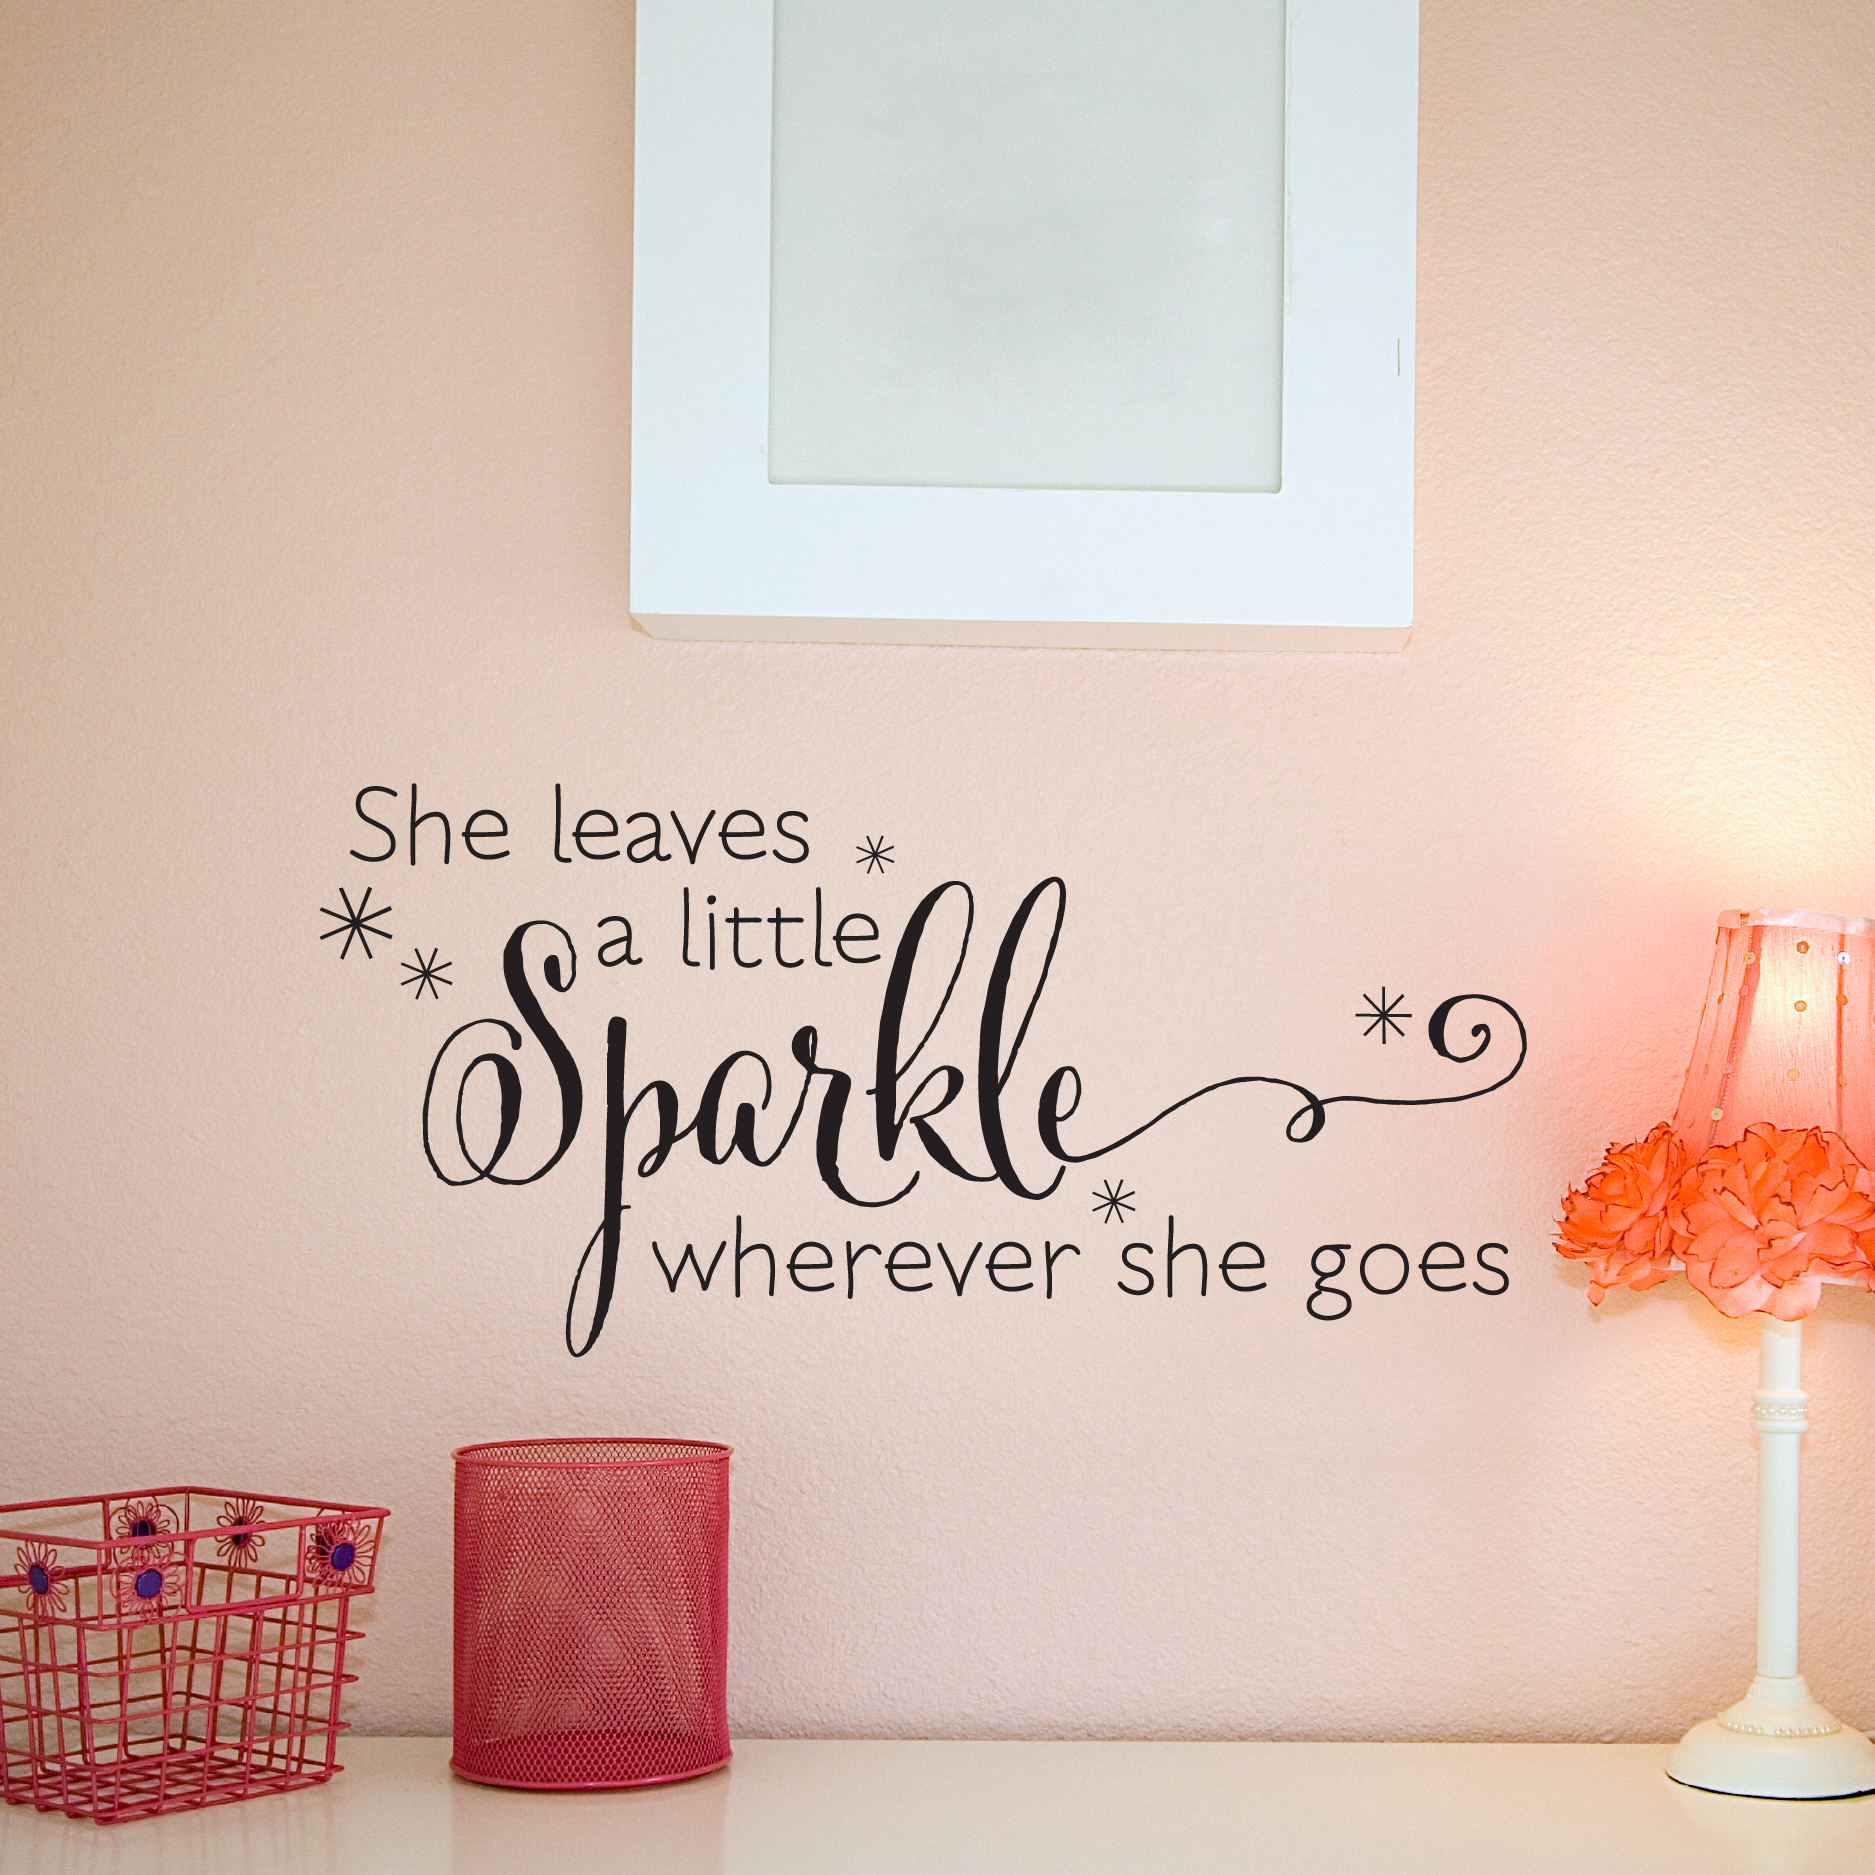 She leaves a sparkle wall quotes decal wallquotes she leaves a sparkle wherever she goes amipublicfo Images